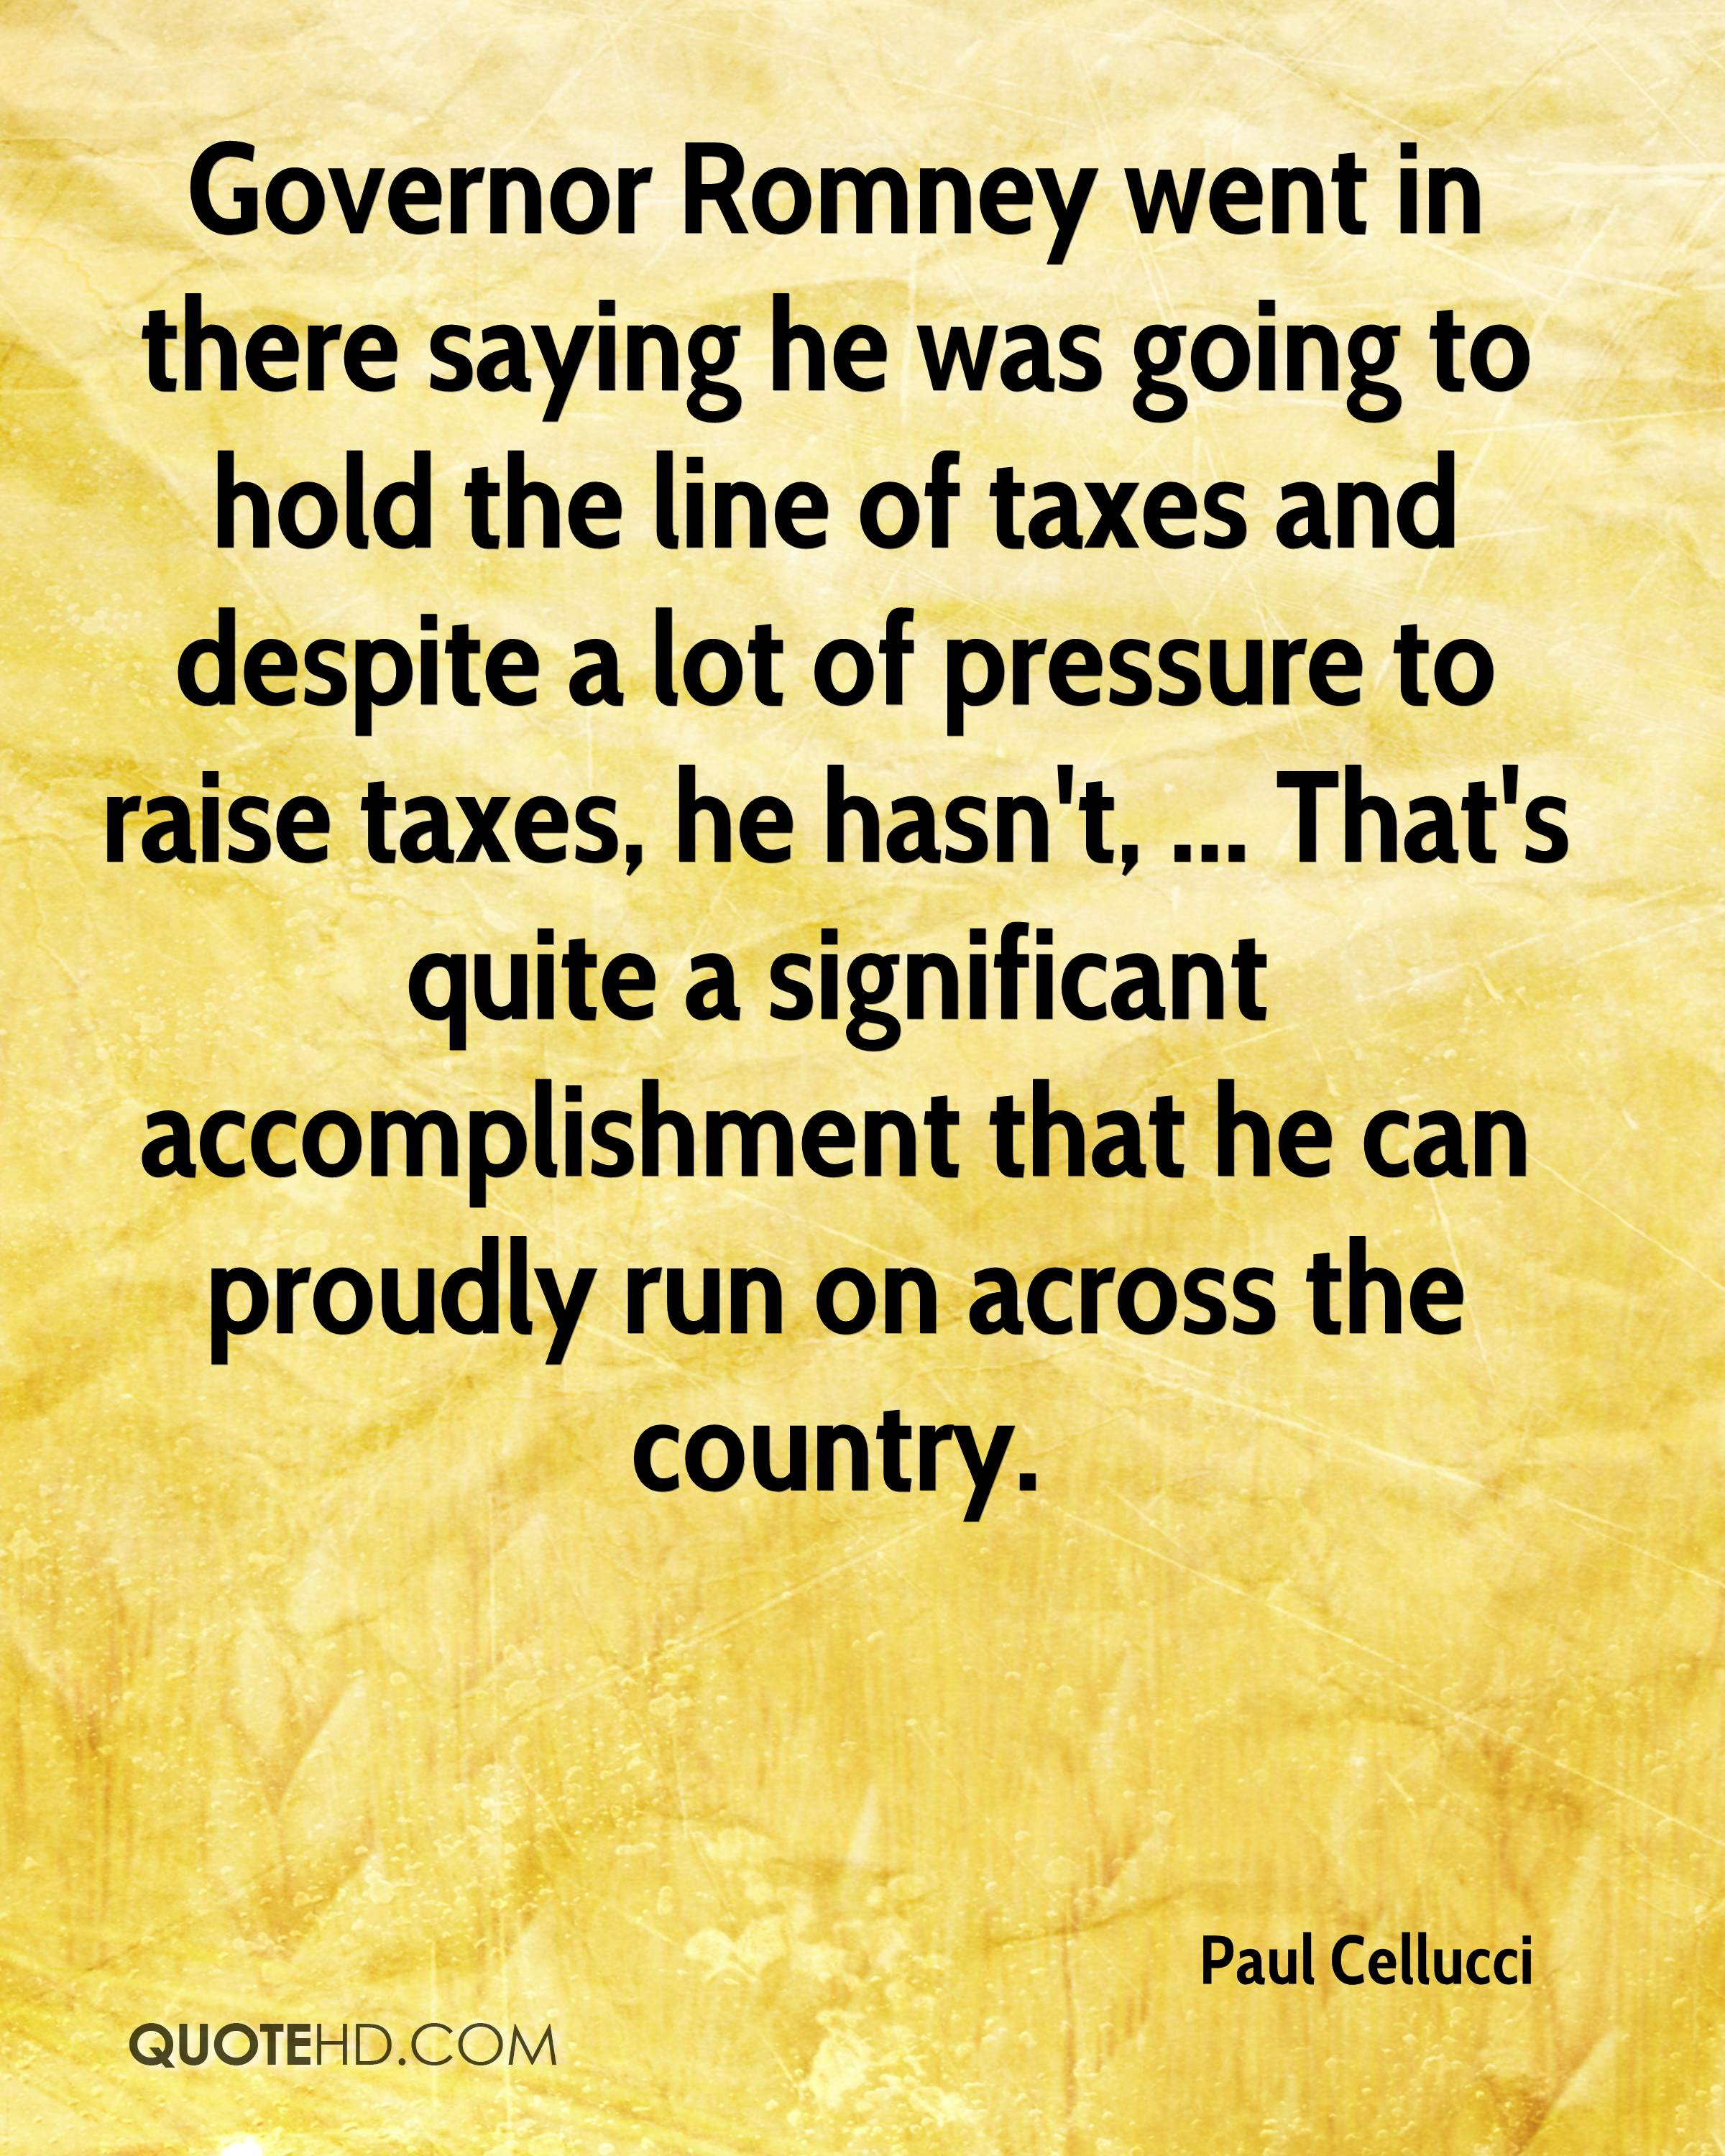 Governor Romney went in there saying he was going to hold the line of taxes and despite a lot of pressure to raise taxes, he hasn't, ... That's quite a significant accomplishment that he can proudly run on across the country.